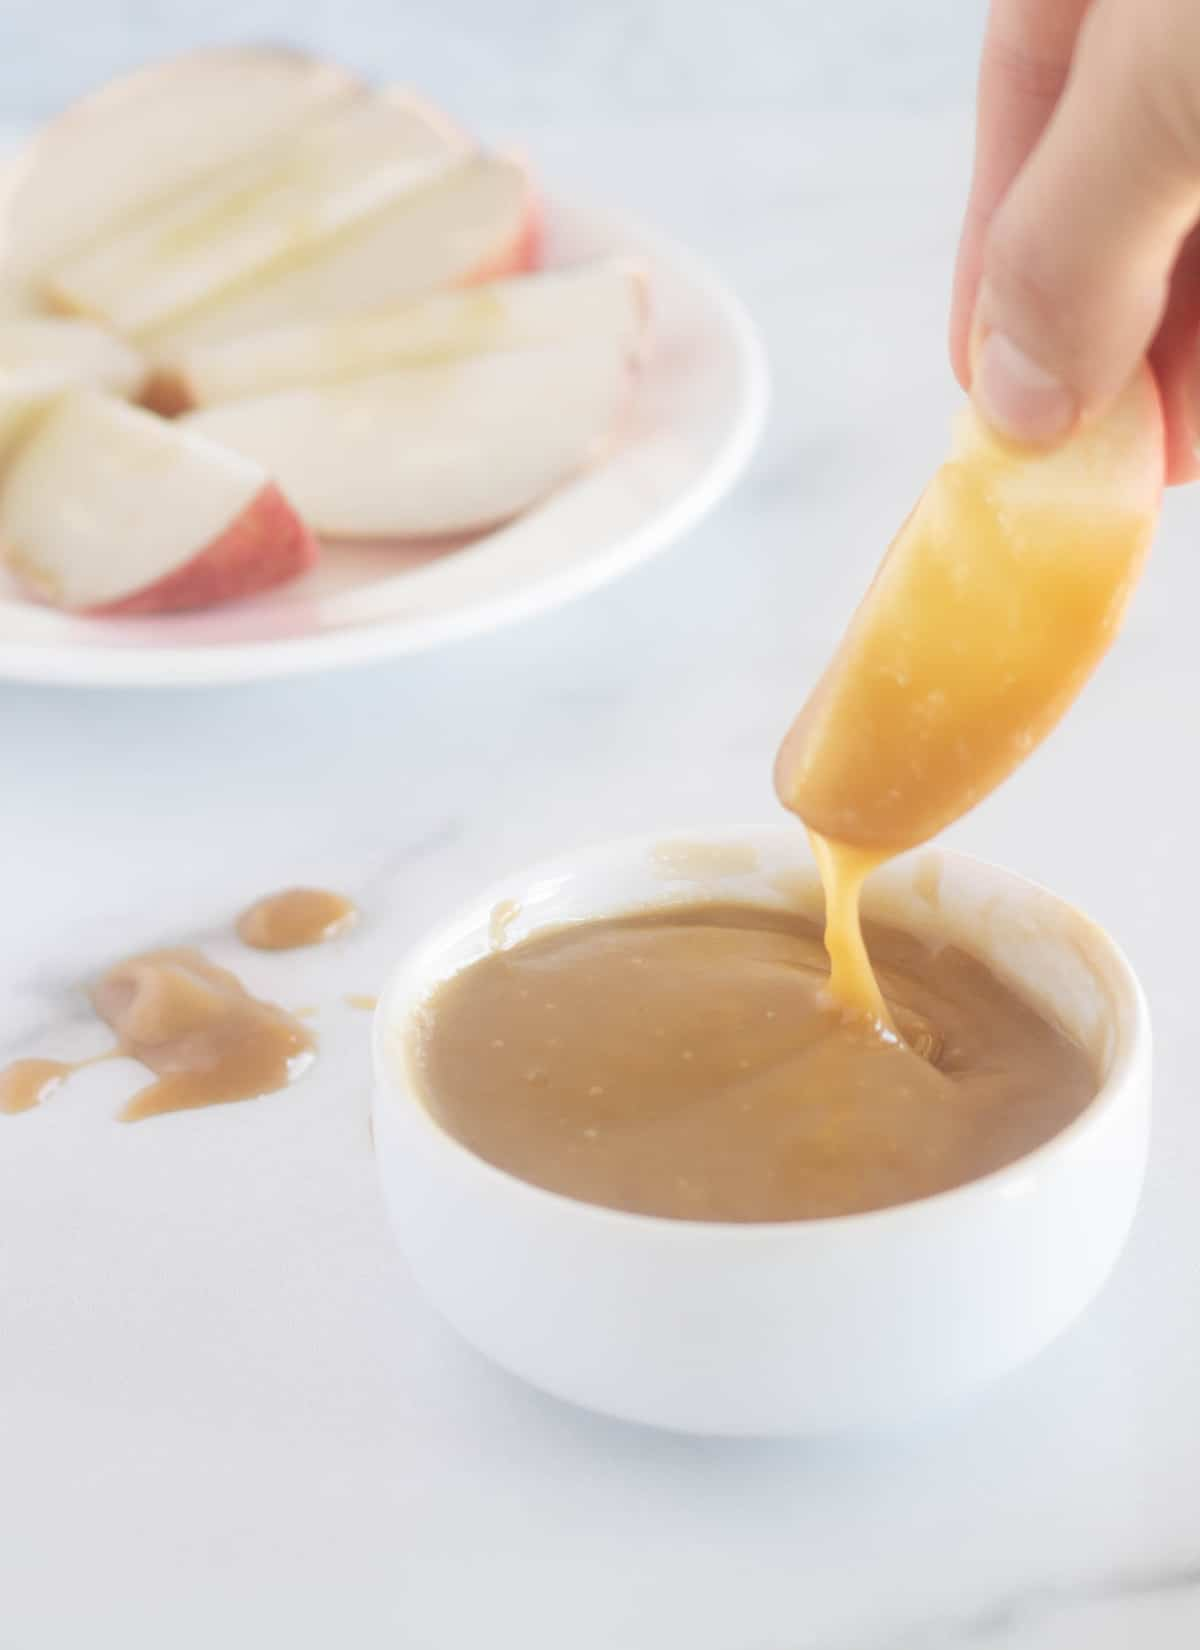 dipping an apple into caramel sauce